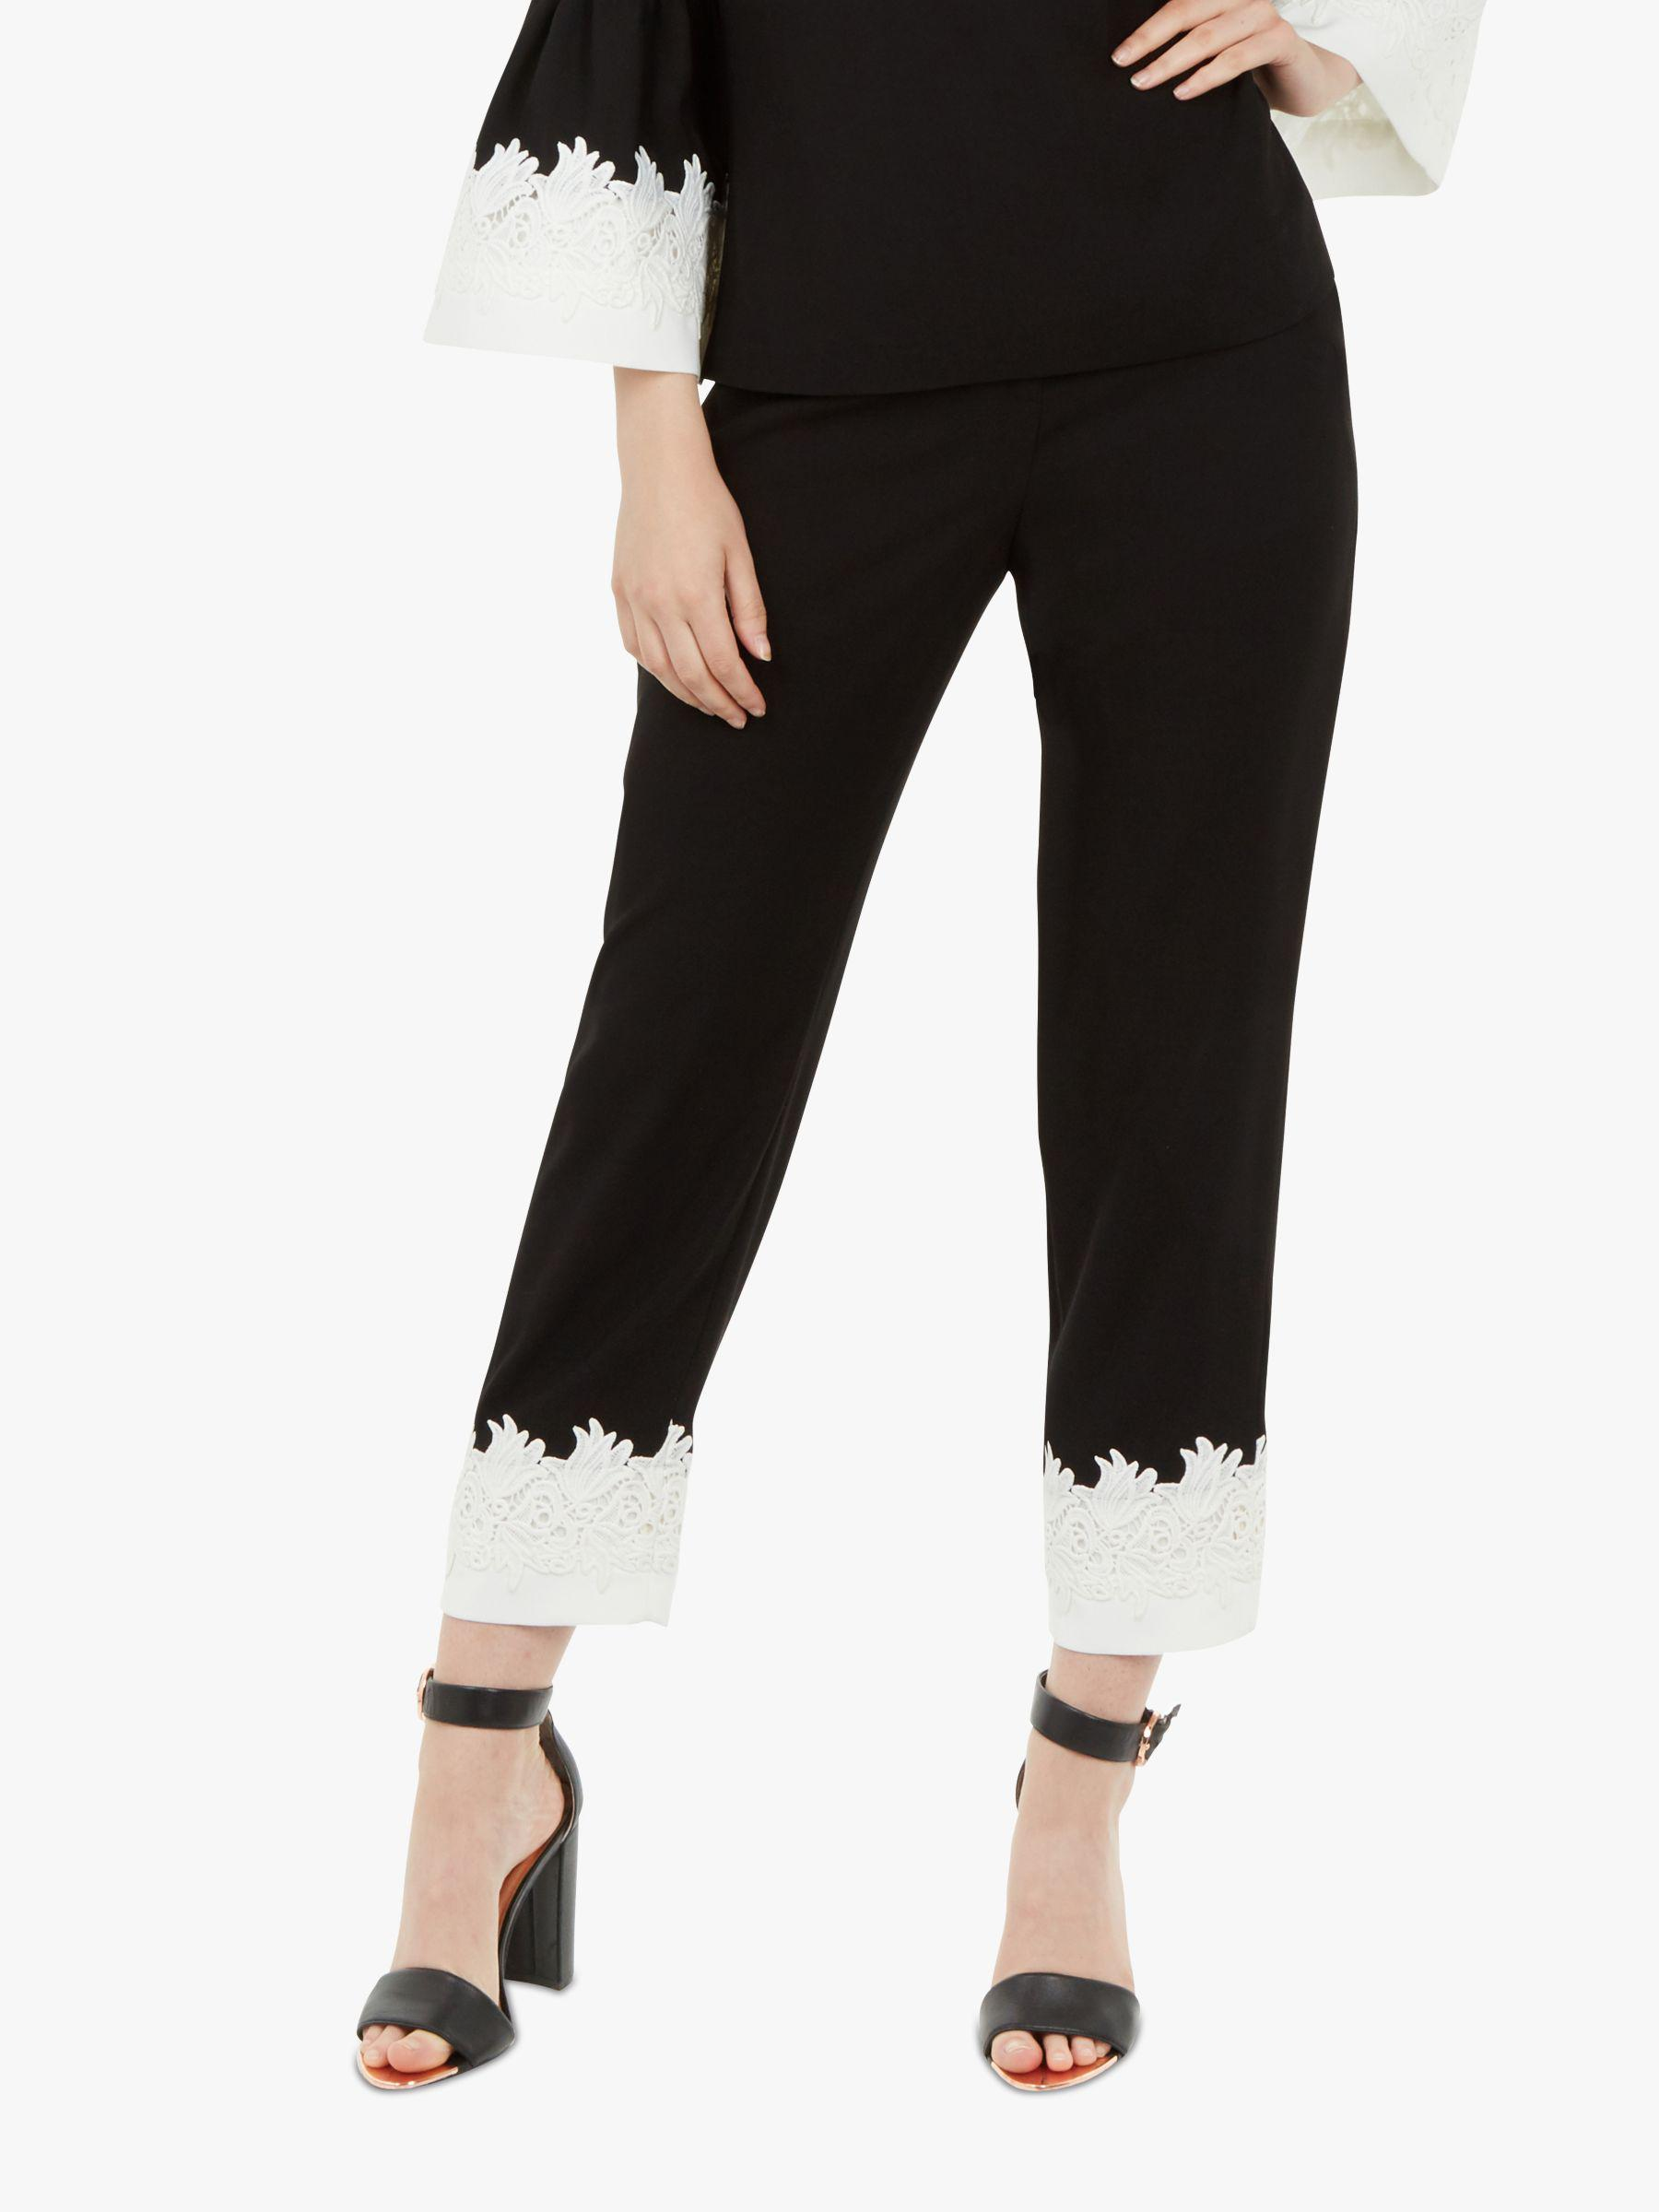 d58345b1c6 Ted Baker Fancisa Lace Trim Trousers in Black - Lyst